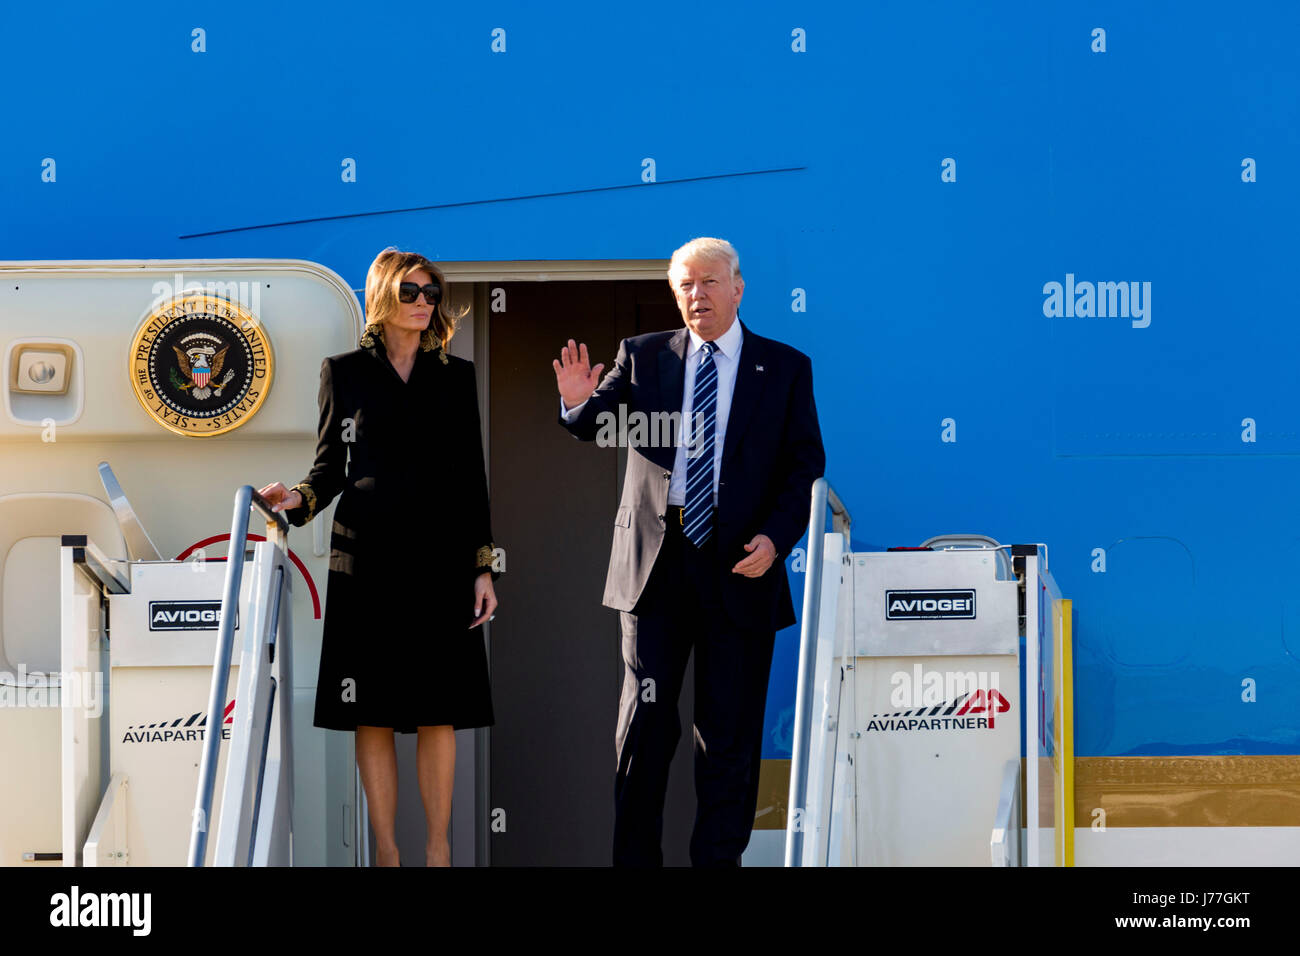 Donald Trump arrives in Rome Italy on board Air Force One Stock Photo